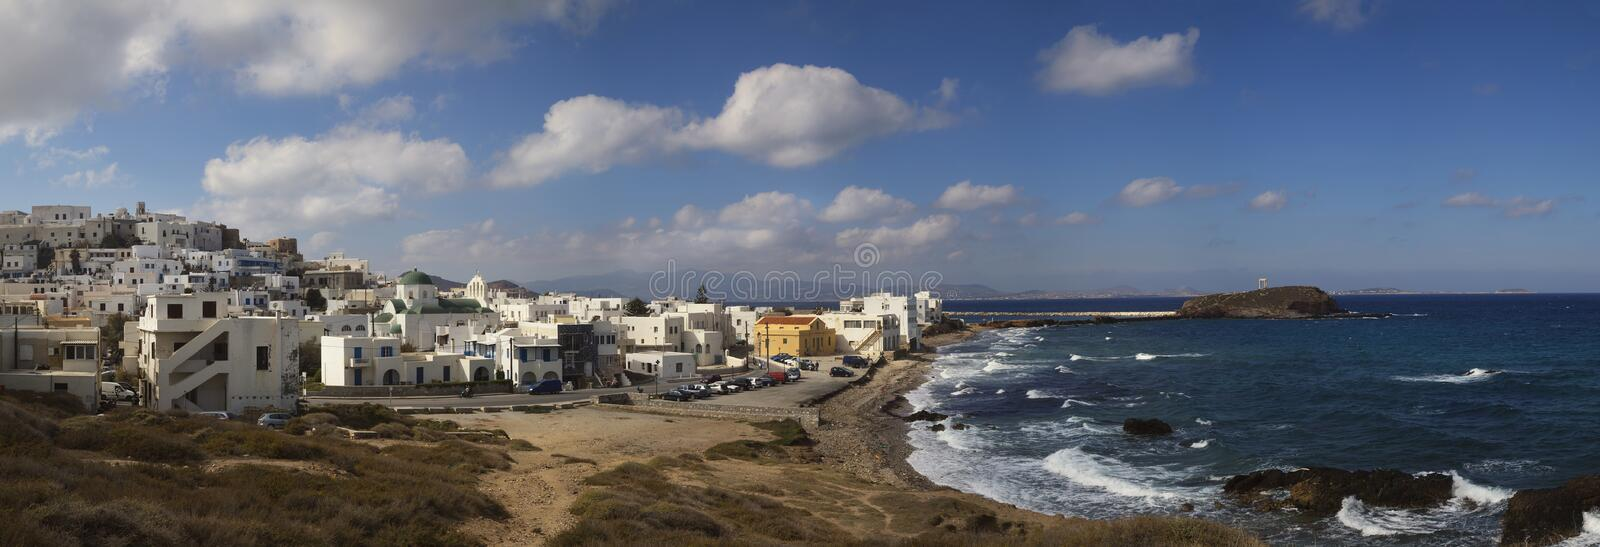 Panorama of Naxos in Greece royalty free stock images